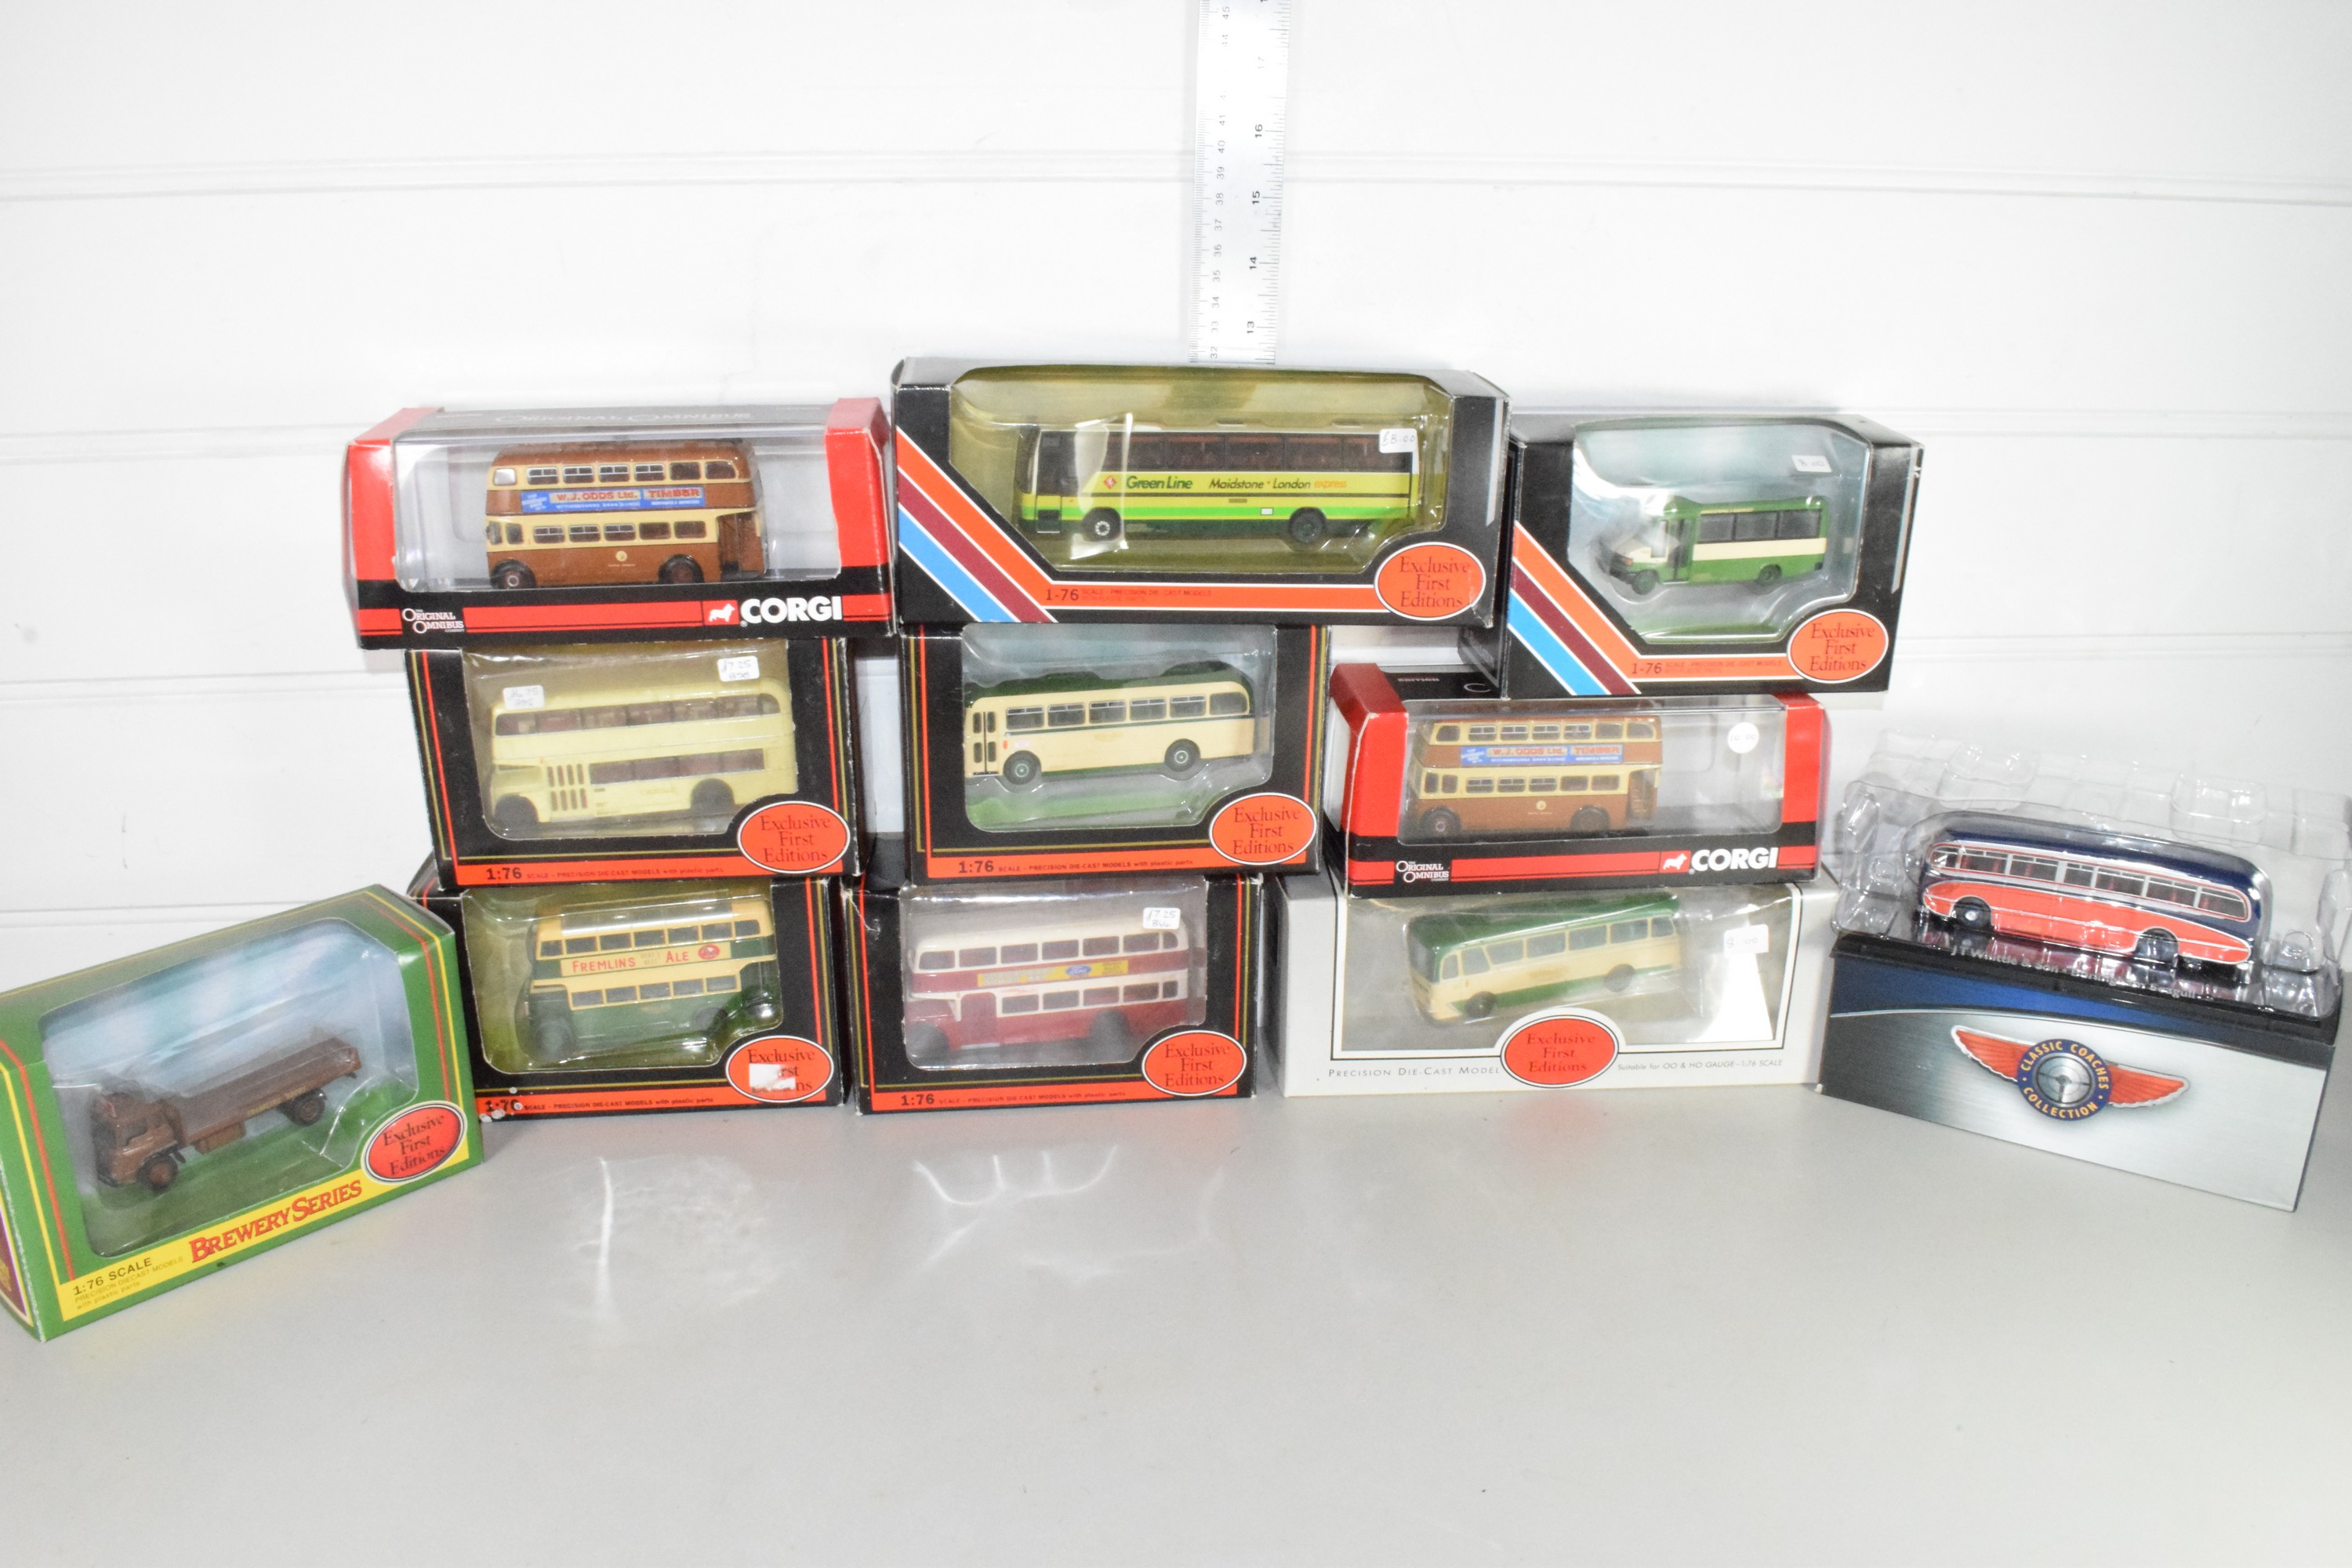 Tray containing a quantity of boxed model buses to include Corgi and Exclusive First Editions